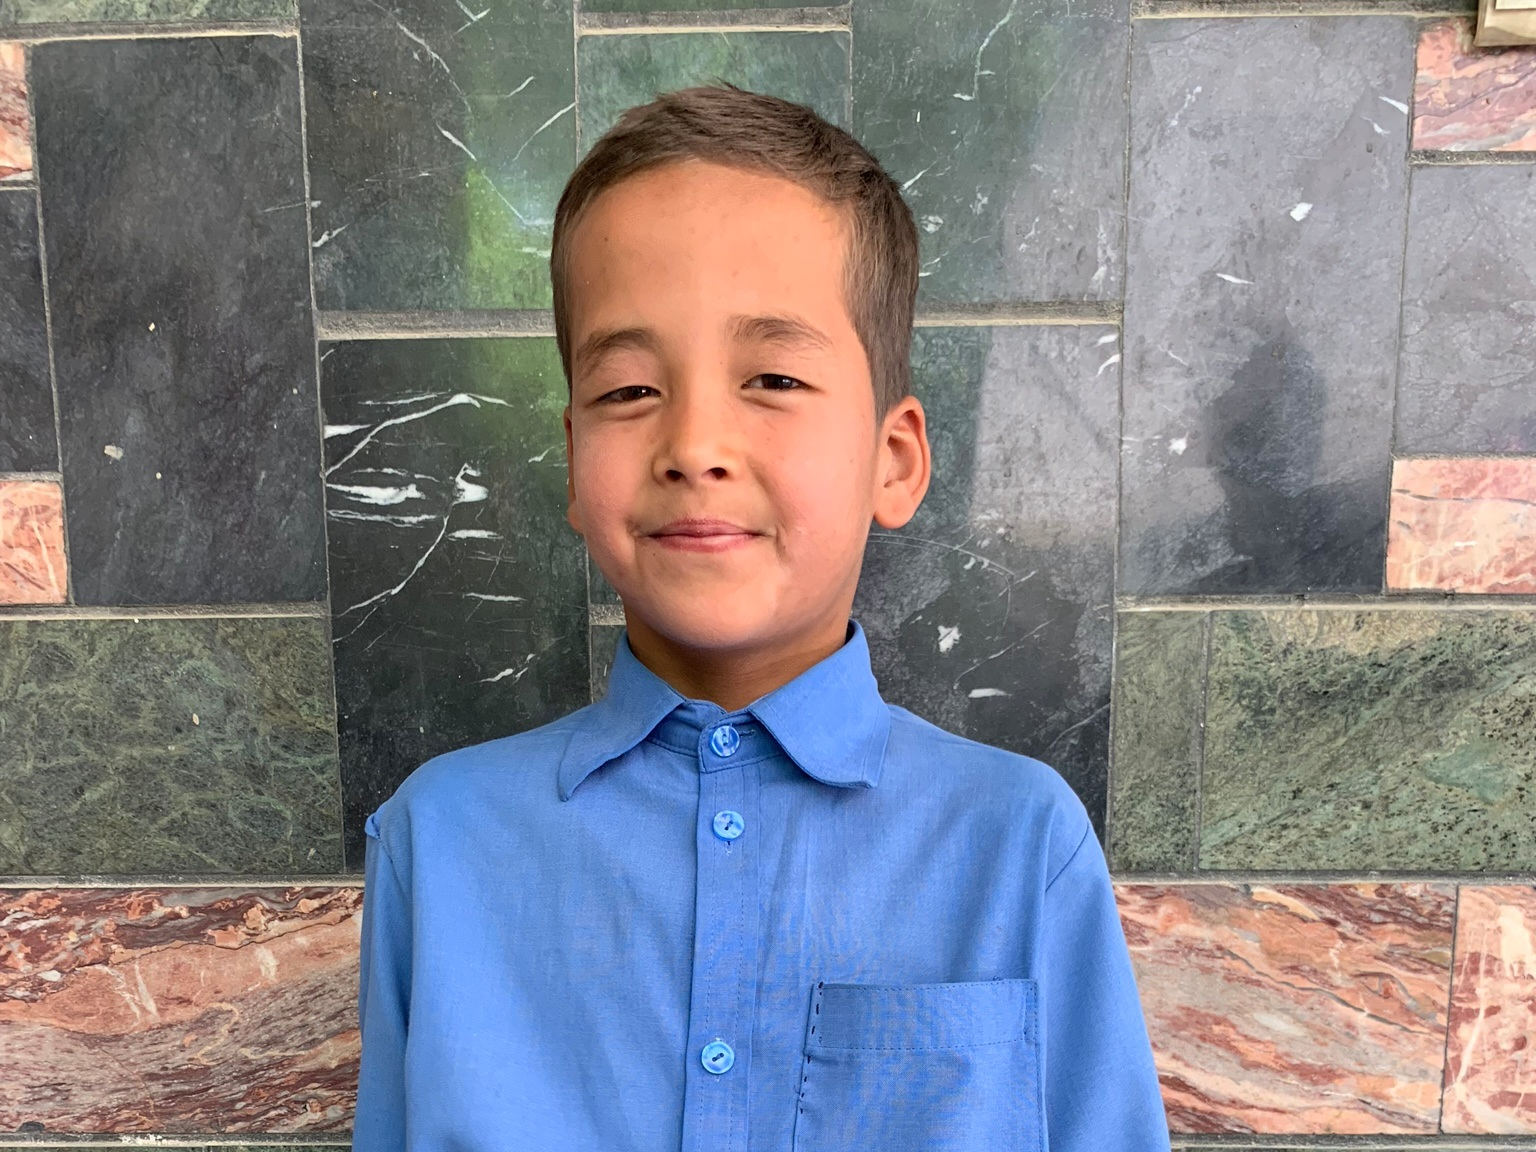 Ali Reza, Age 9 - Ali Reza has 5 siblings. He mother is unemployed and his father is a cook.BE ALI REZA'S PARTNER>